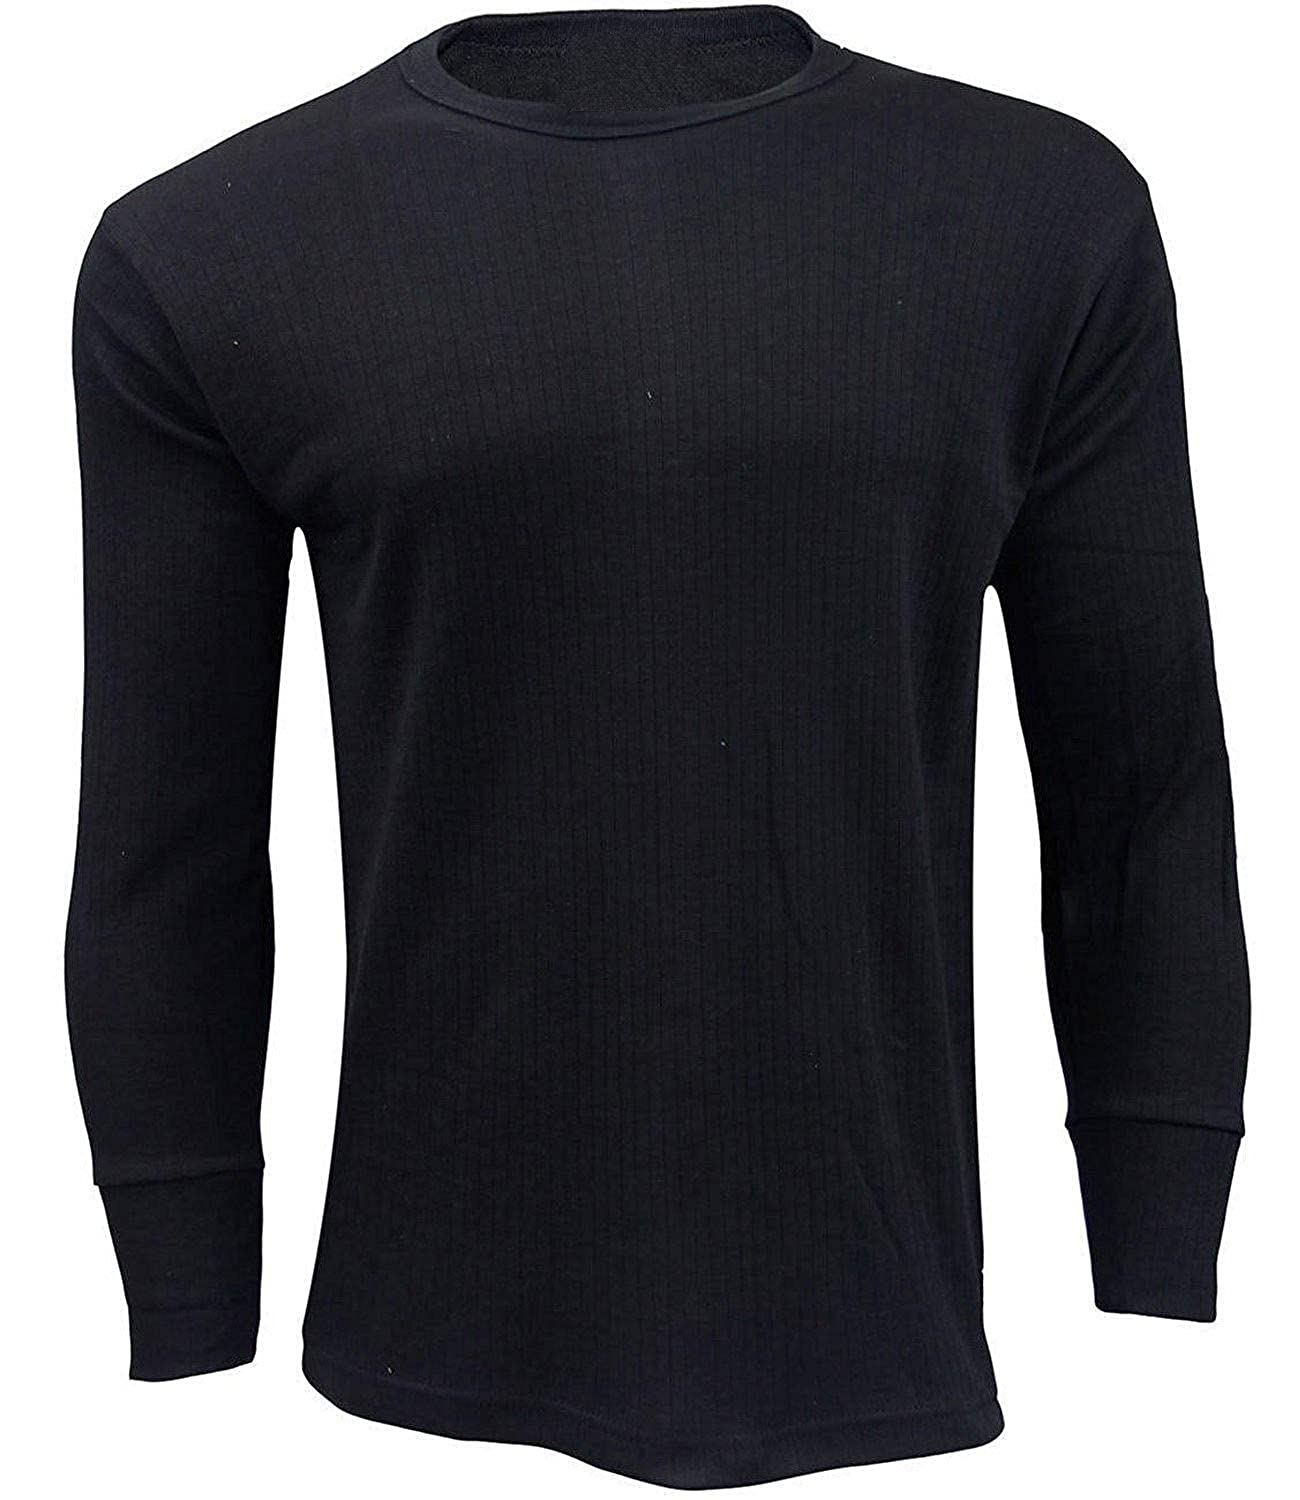 3X Men's Thermal Shirt Top Underwear Full Sleeve Vest Warm Winter Baselayer Underwear T-Shirt Black